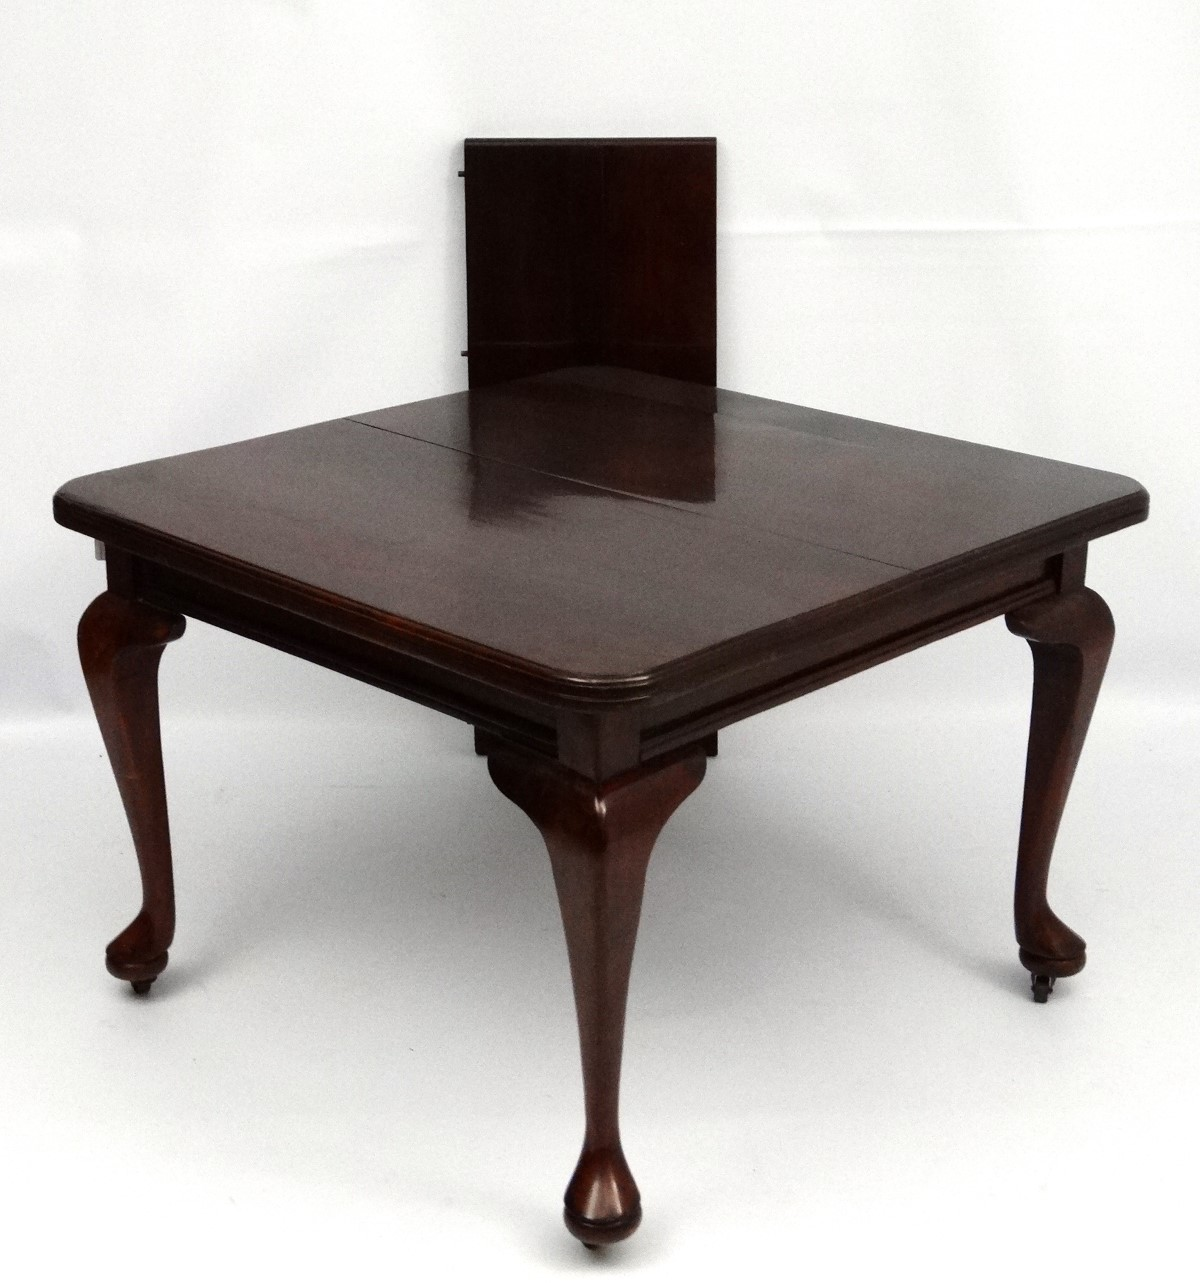 Lot 30 - An early 20thC Queen Anne style stained pine dining table with single leaf.